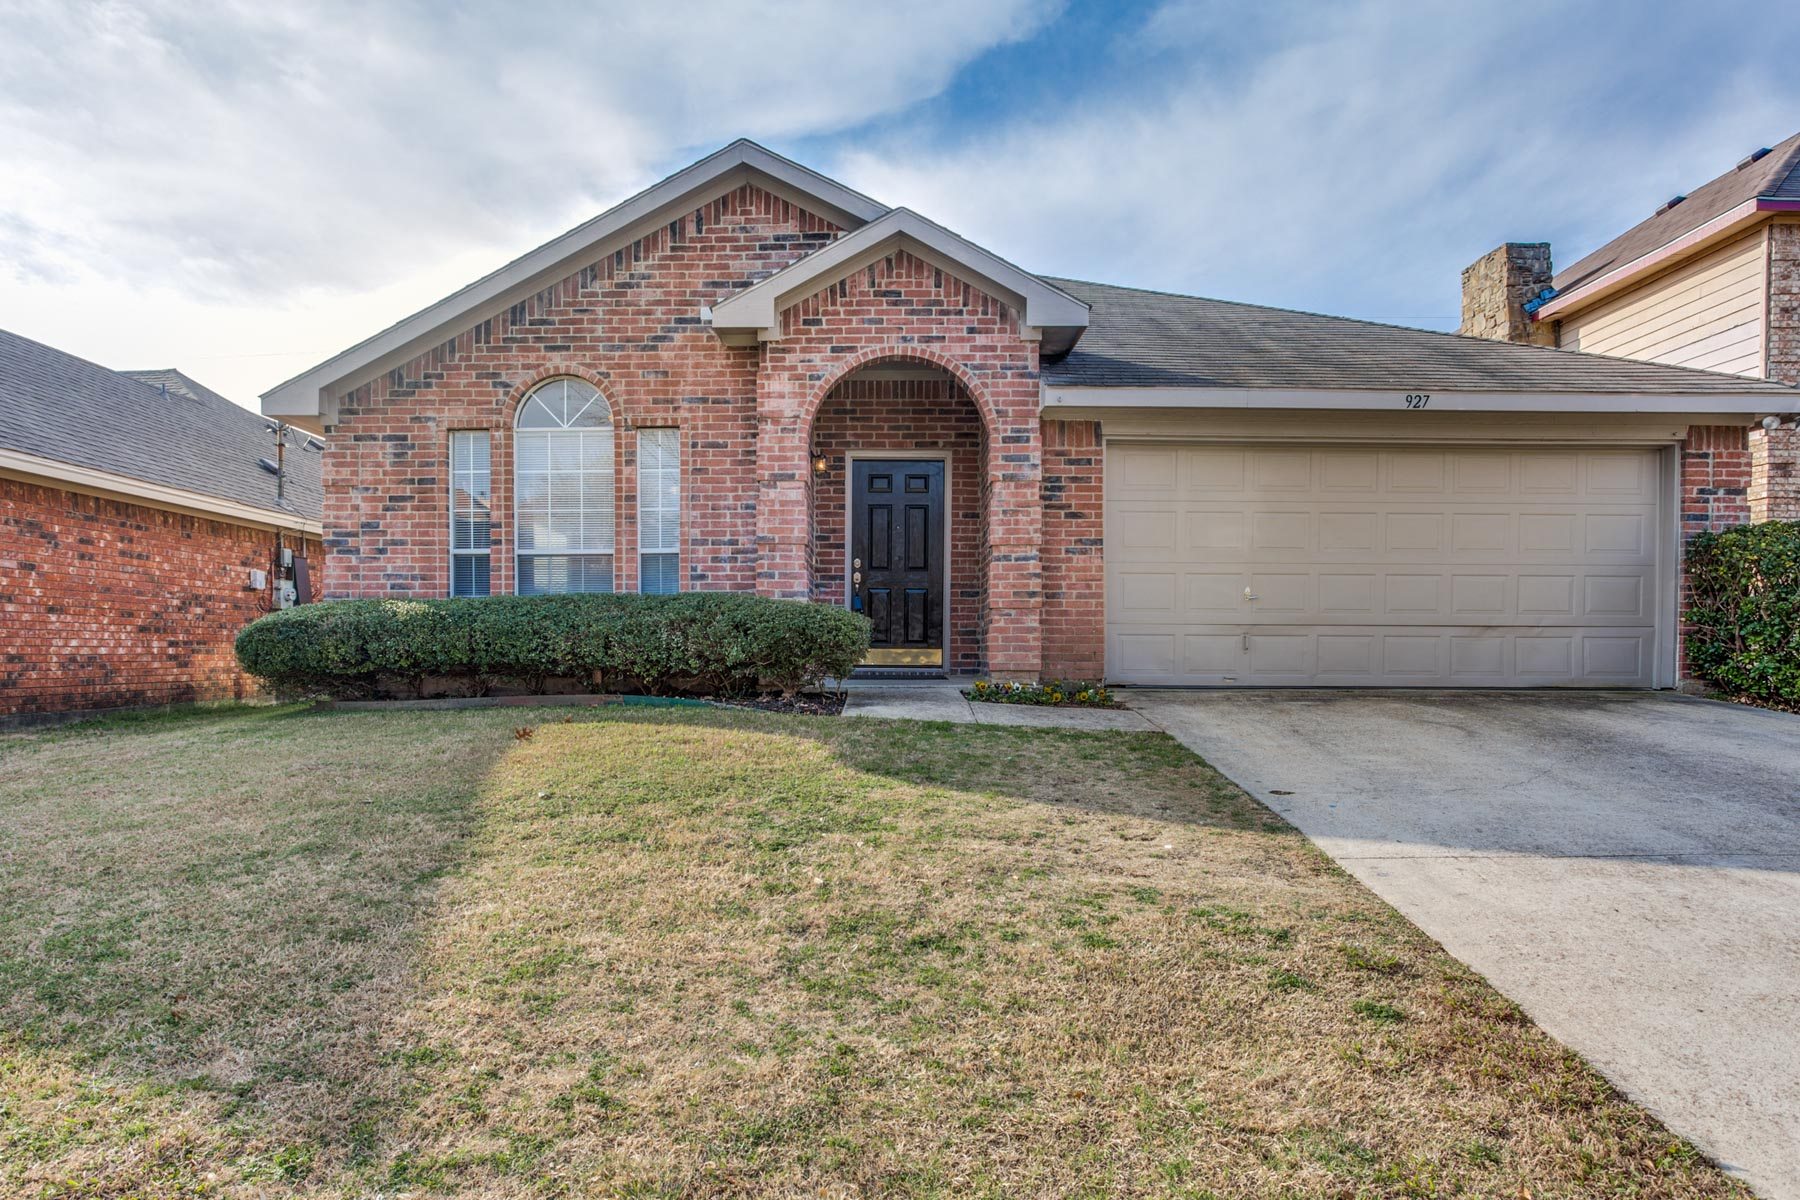 Single Family Home for Sale at Charming Single Story 927 Simon Dr Cedar Hill, Texas 75104 United States